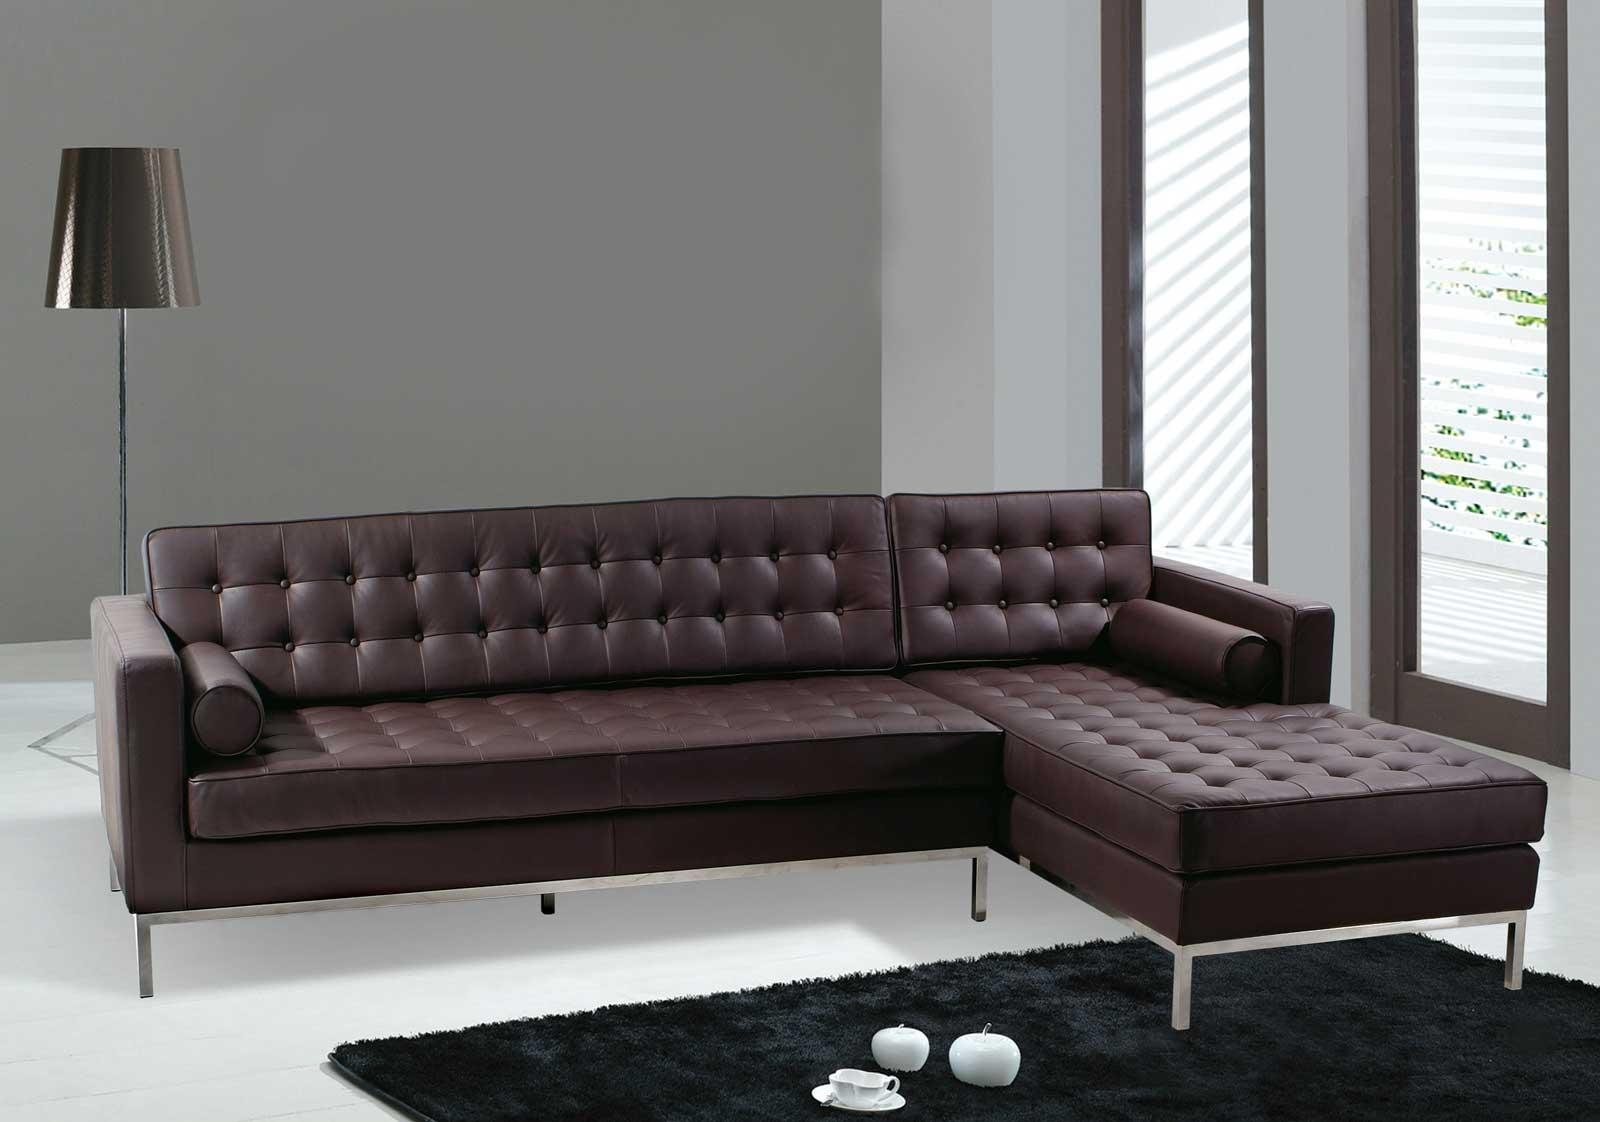 Furniture : Italian Sofa With White Tone With Artistic Long Bowl With Long Modern Sofas (Image 6 of 20)